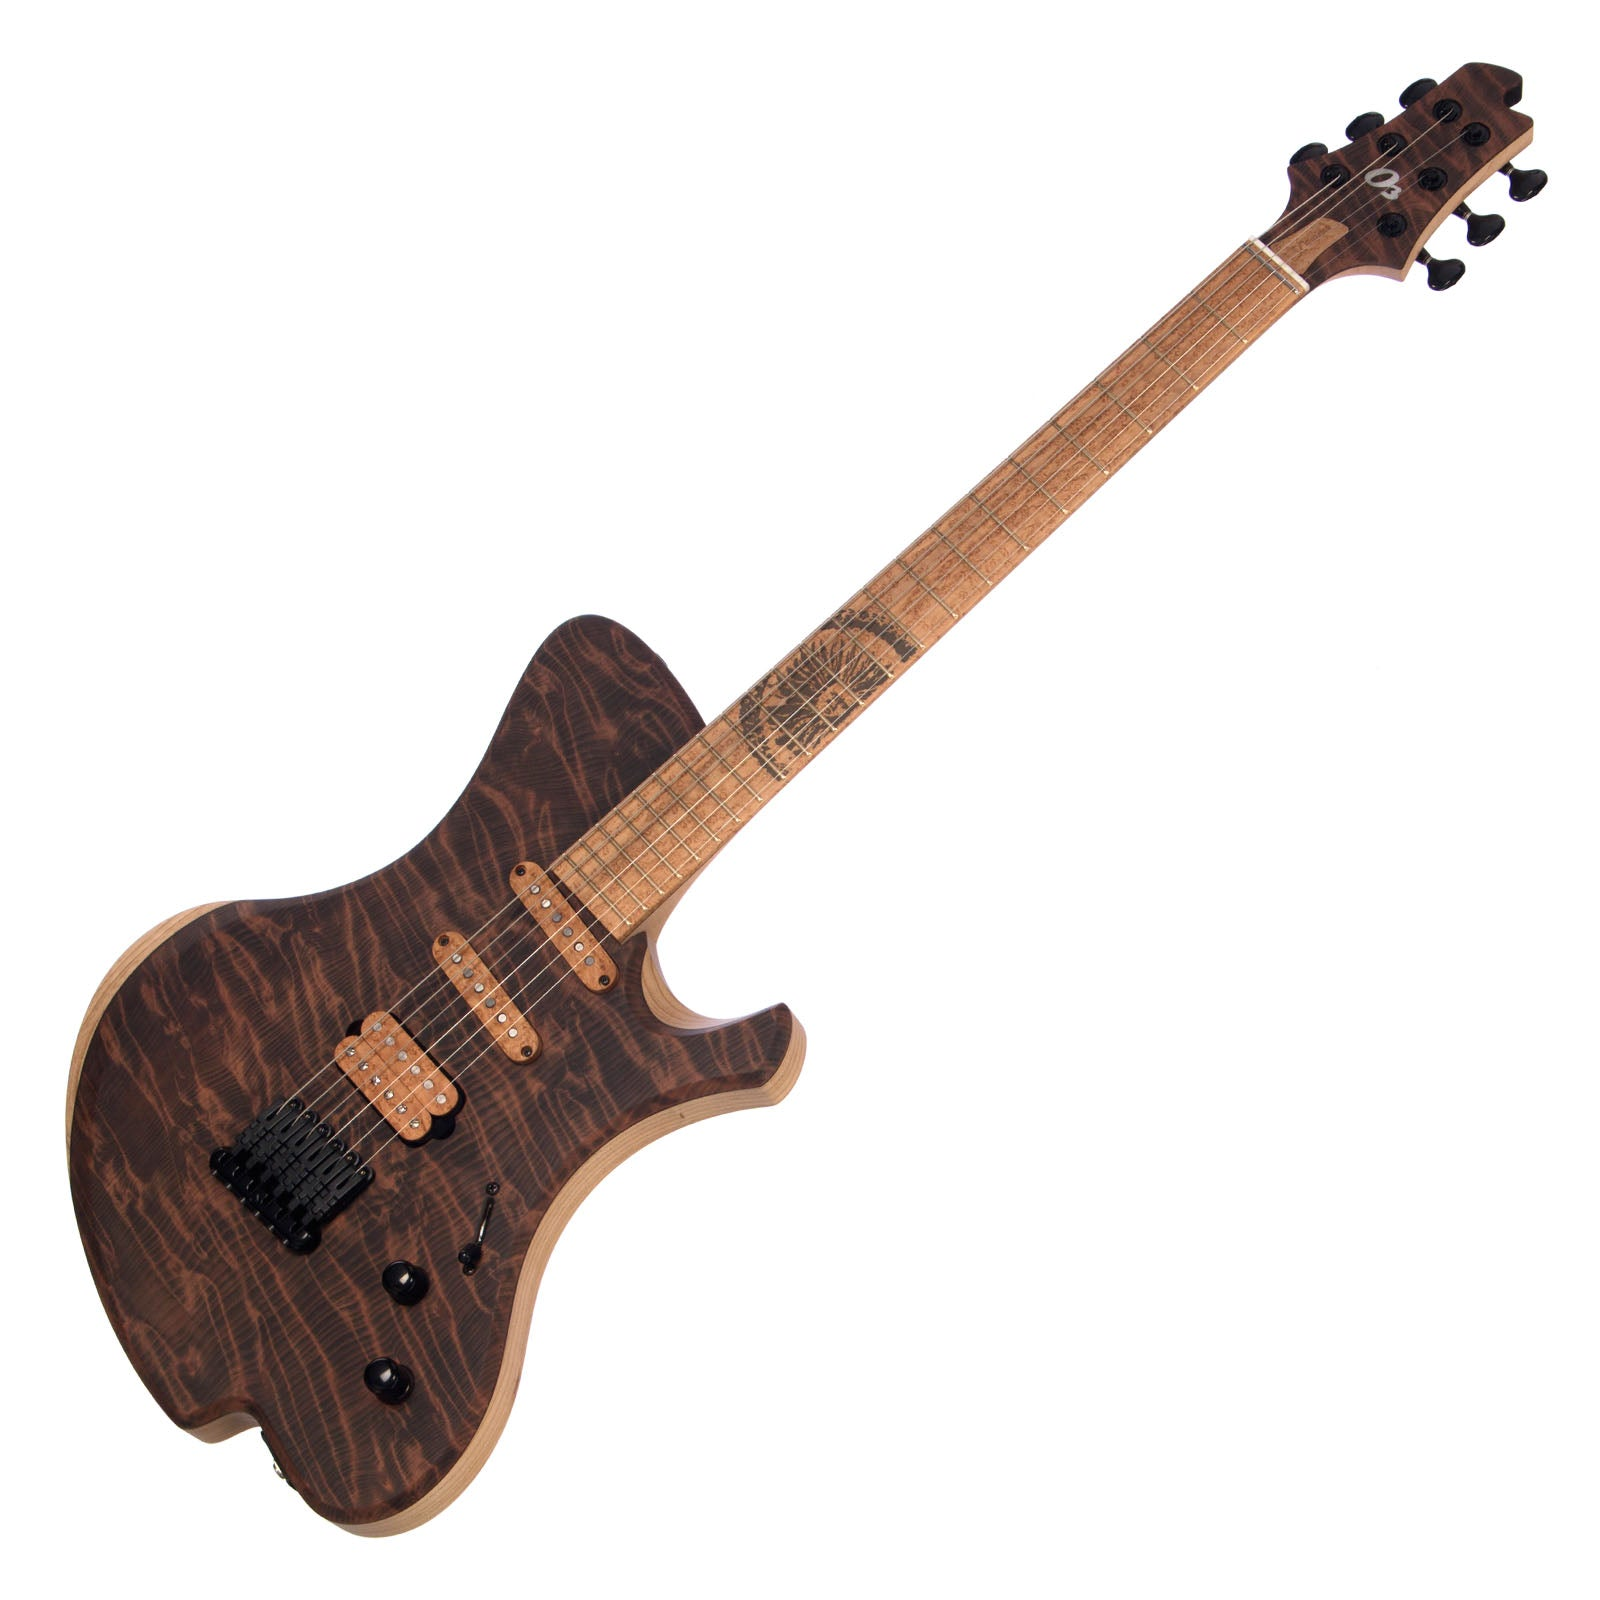 o3 Guitars Xenon - Volcanic Dunes figured Redwood - Hand Made by